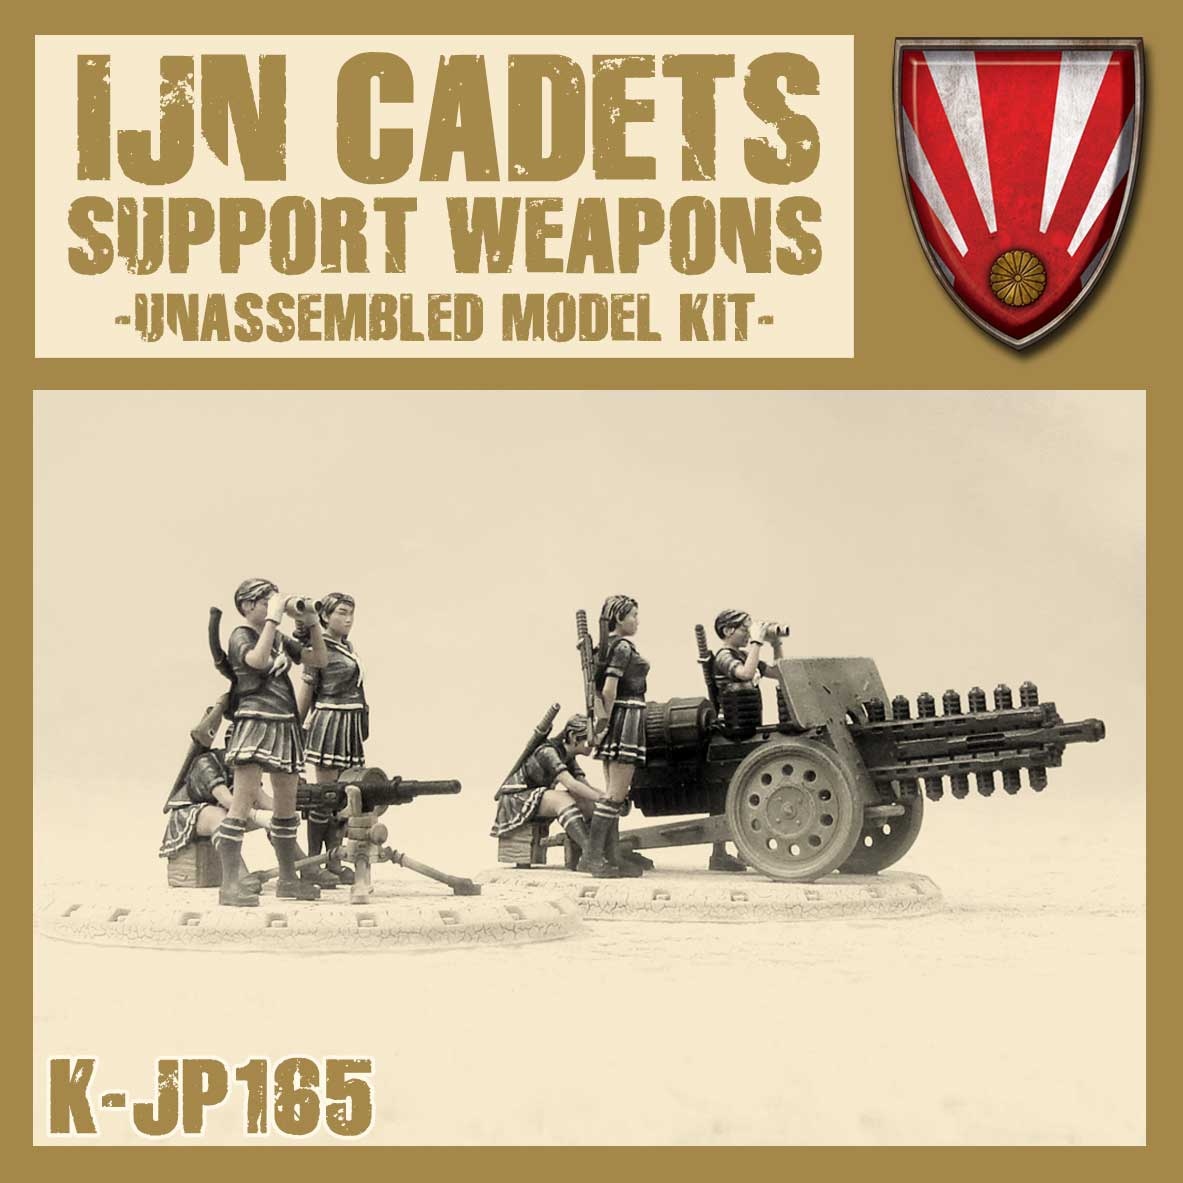 IJN Cadets Support Weapons Kit